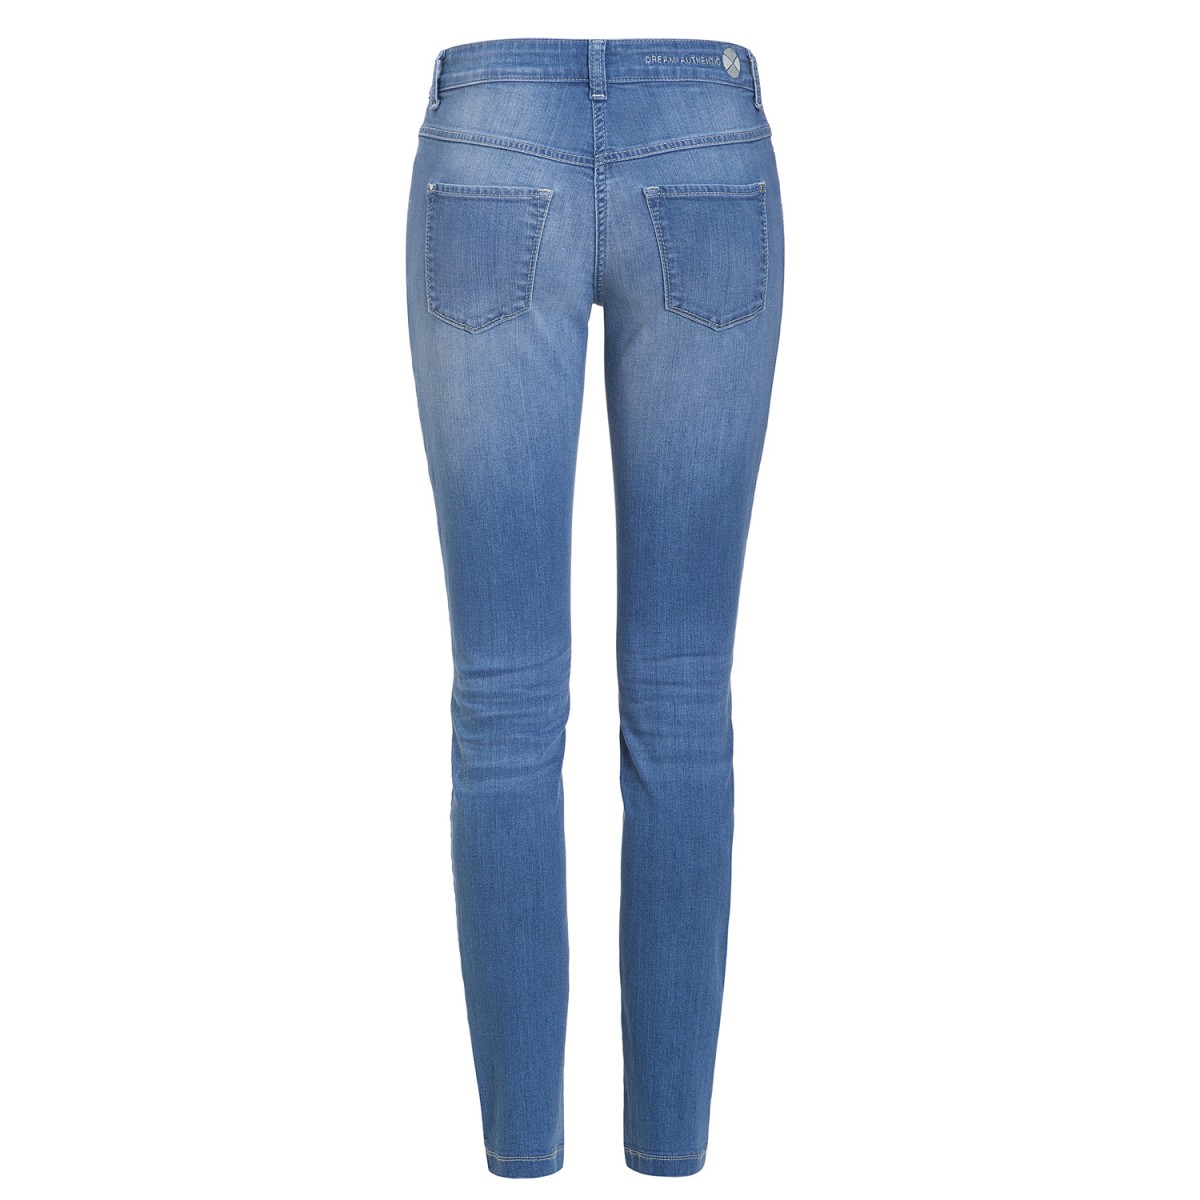 MAC Jeans Dream Skinny Authentic Mid Blue Used 5457 0375L D530-35